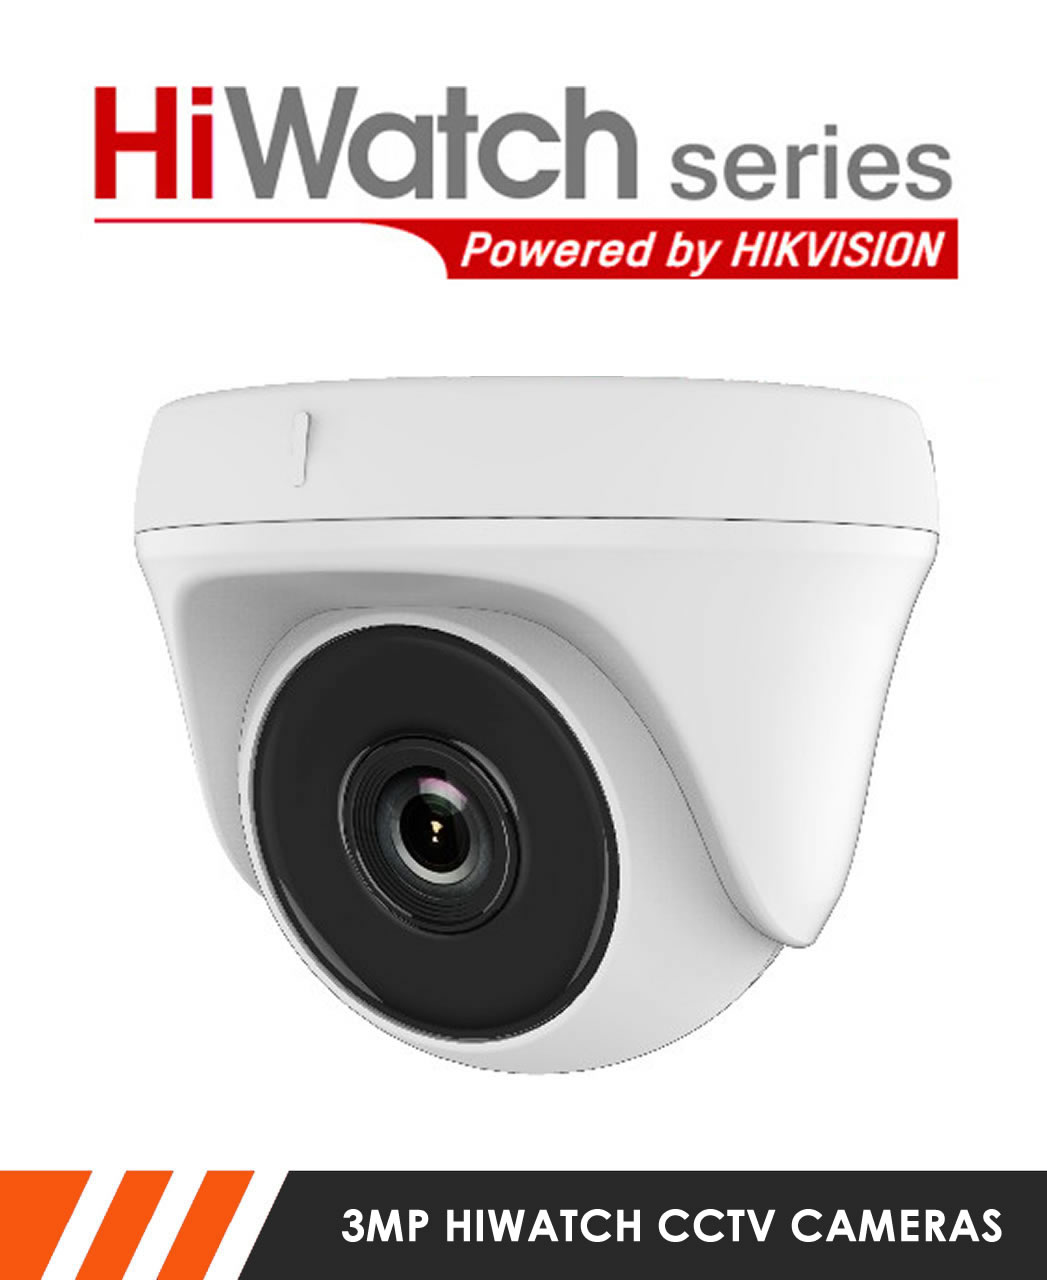 3MP HiWatch CCTV Cameras